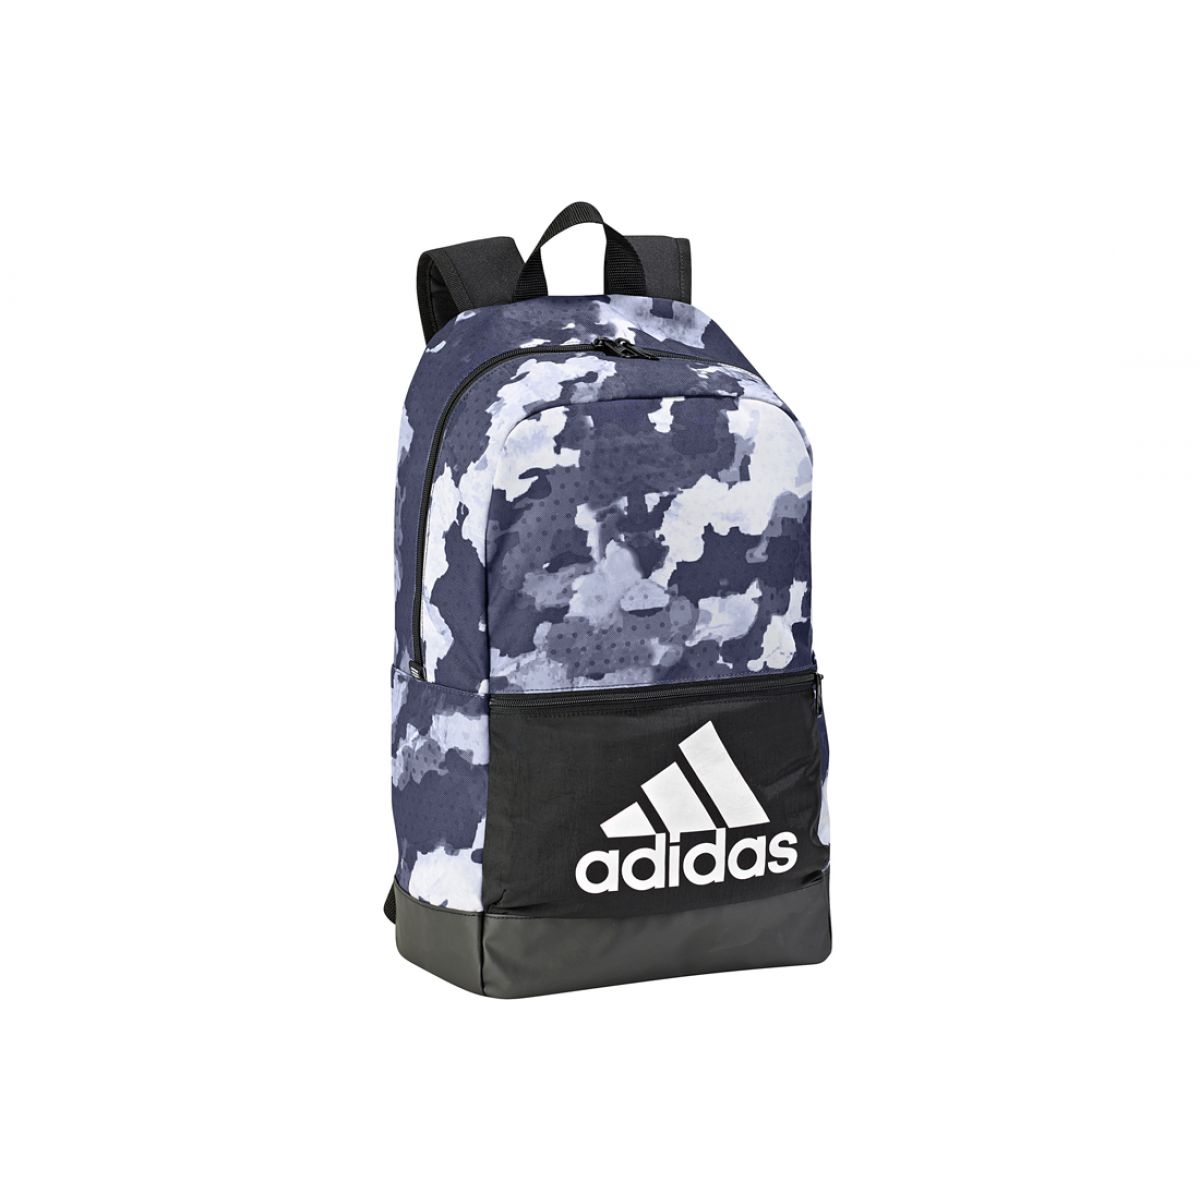 Adidas Classic Pocket Backpack